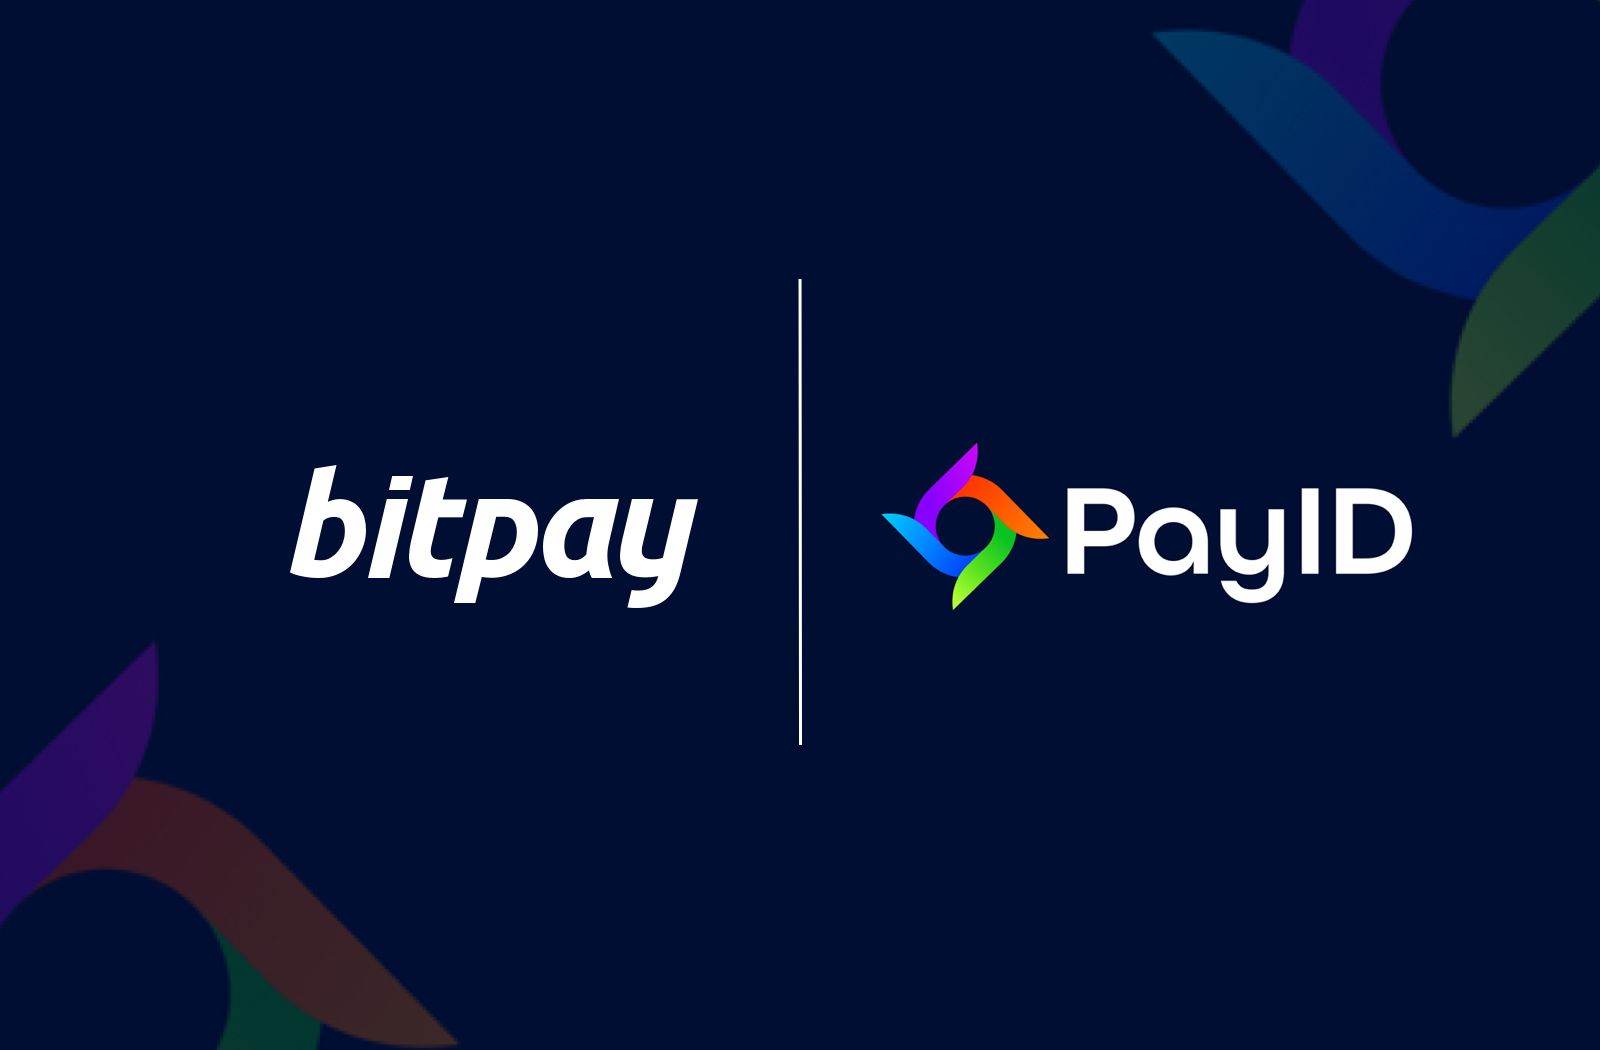 BitPay Supports the PayID Mission to Make Blockchain Payments Easier